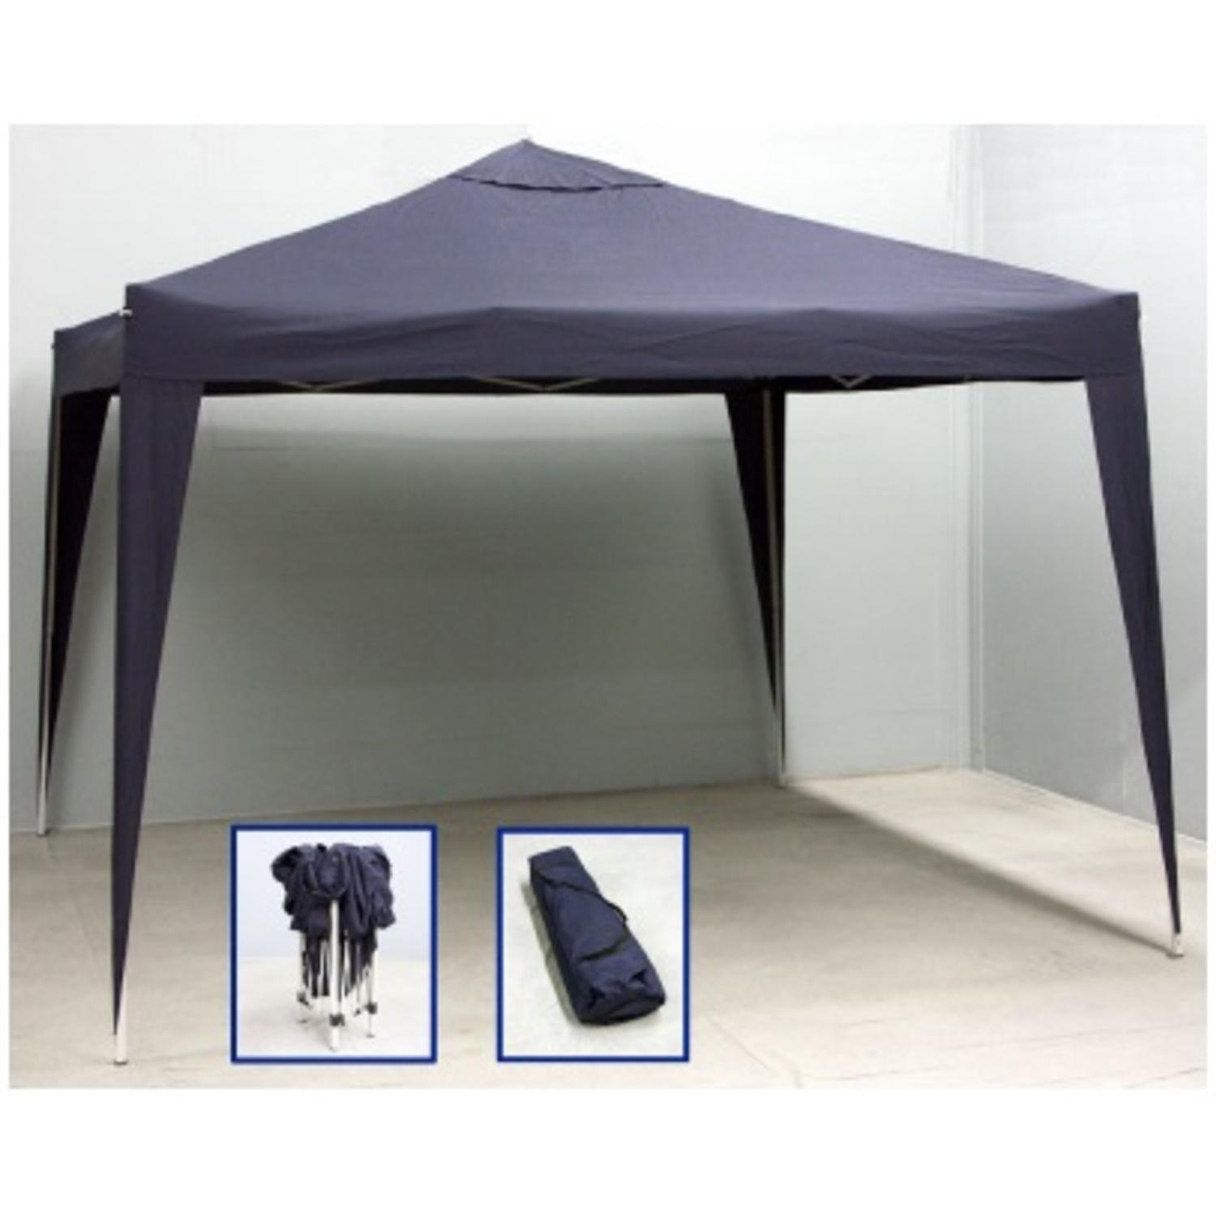 10u0027 x 10u0027 Navy Blue Outdoor Garden Party Stadium Folding Canopy Gazebo (Steel  sc 1 st  Pinterest & 10u0027 x 10u0027 Navy Blue Outdoor Garden Party Stadium Folding Canopy ...